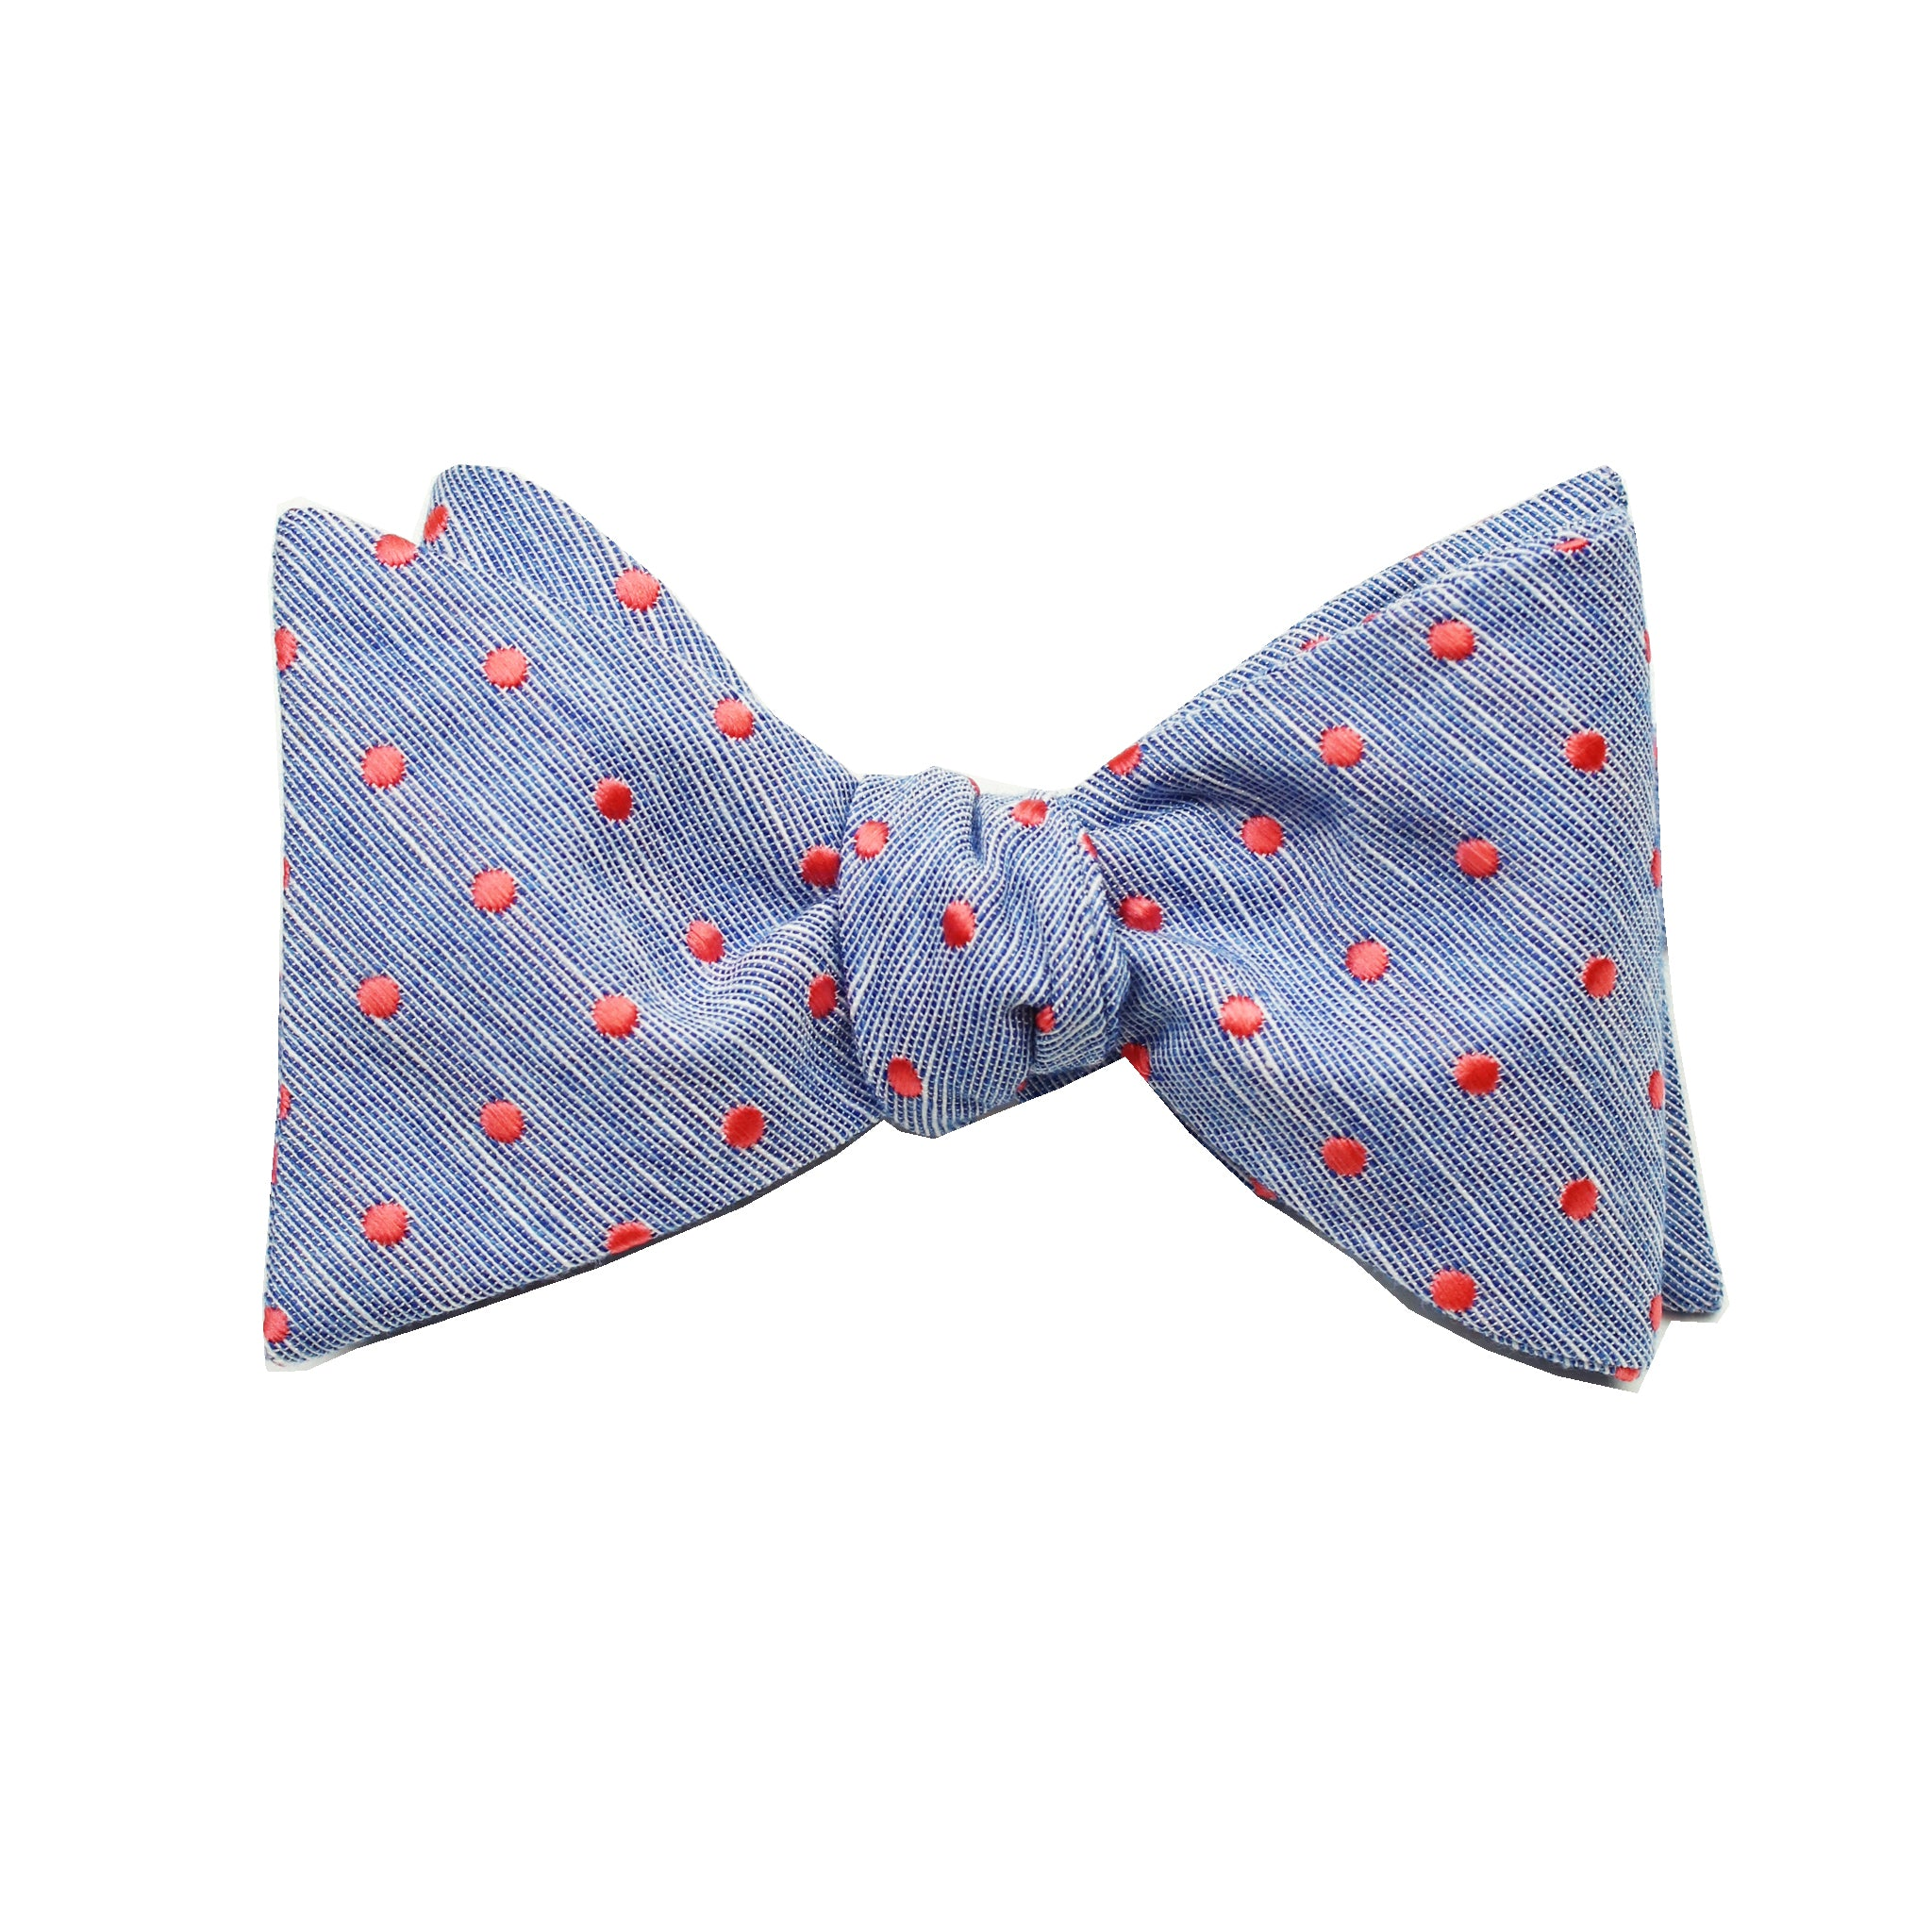 Blue & Coral Polkadot Self Tie Bow Tie